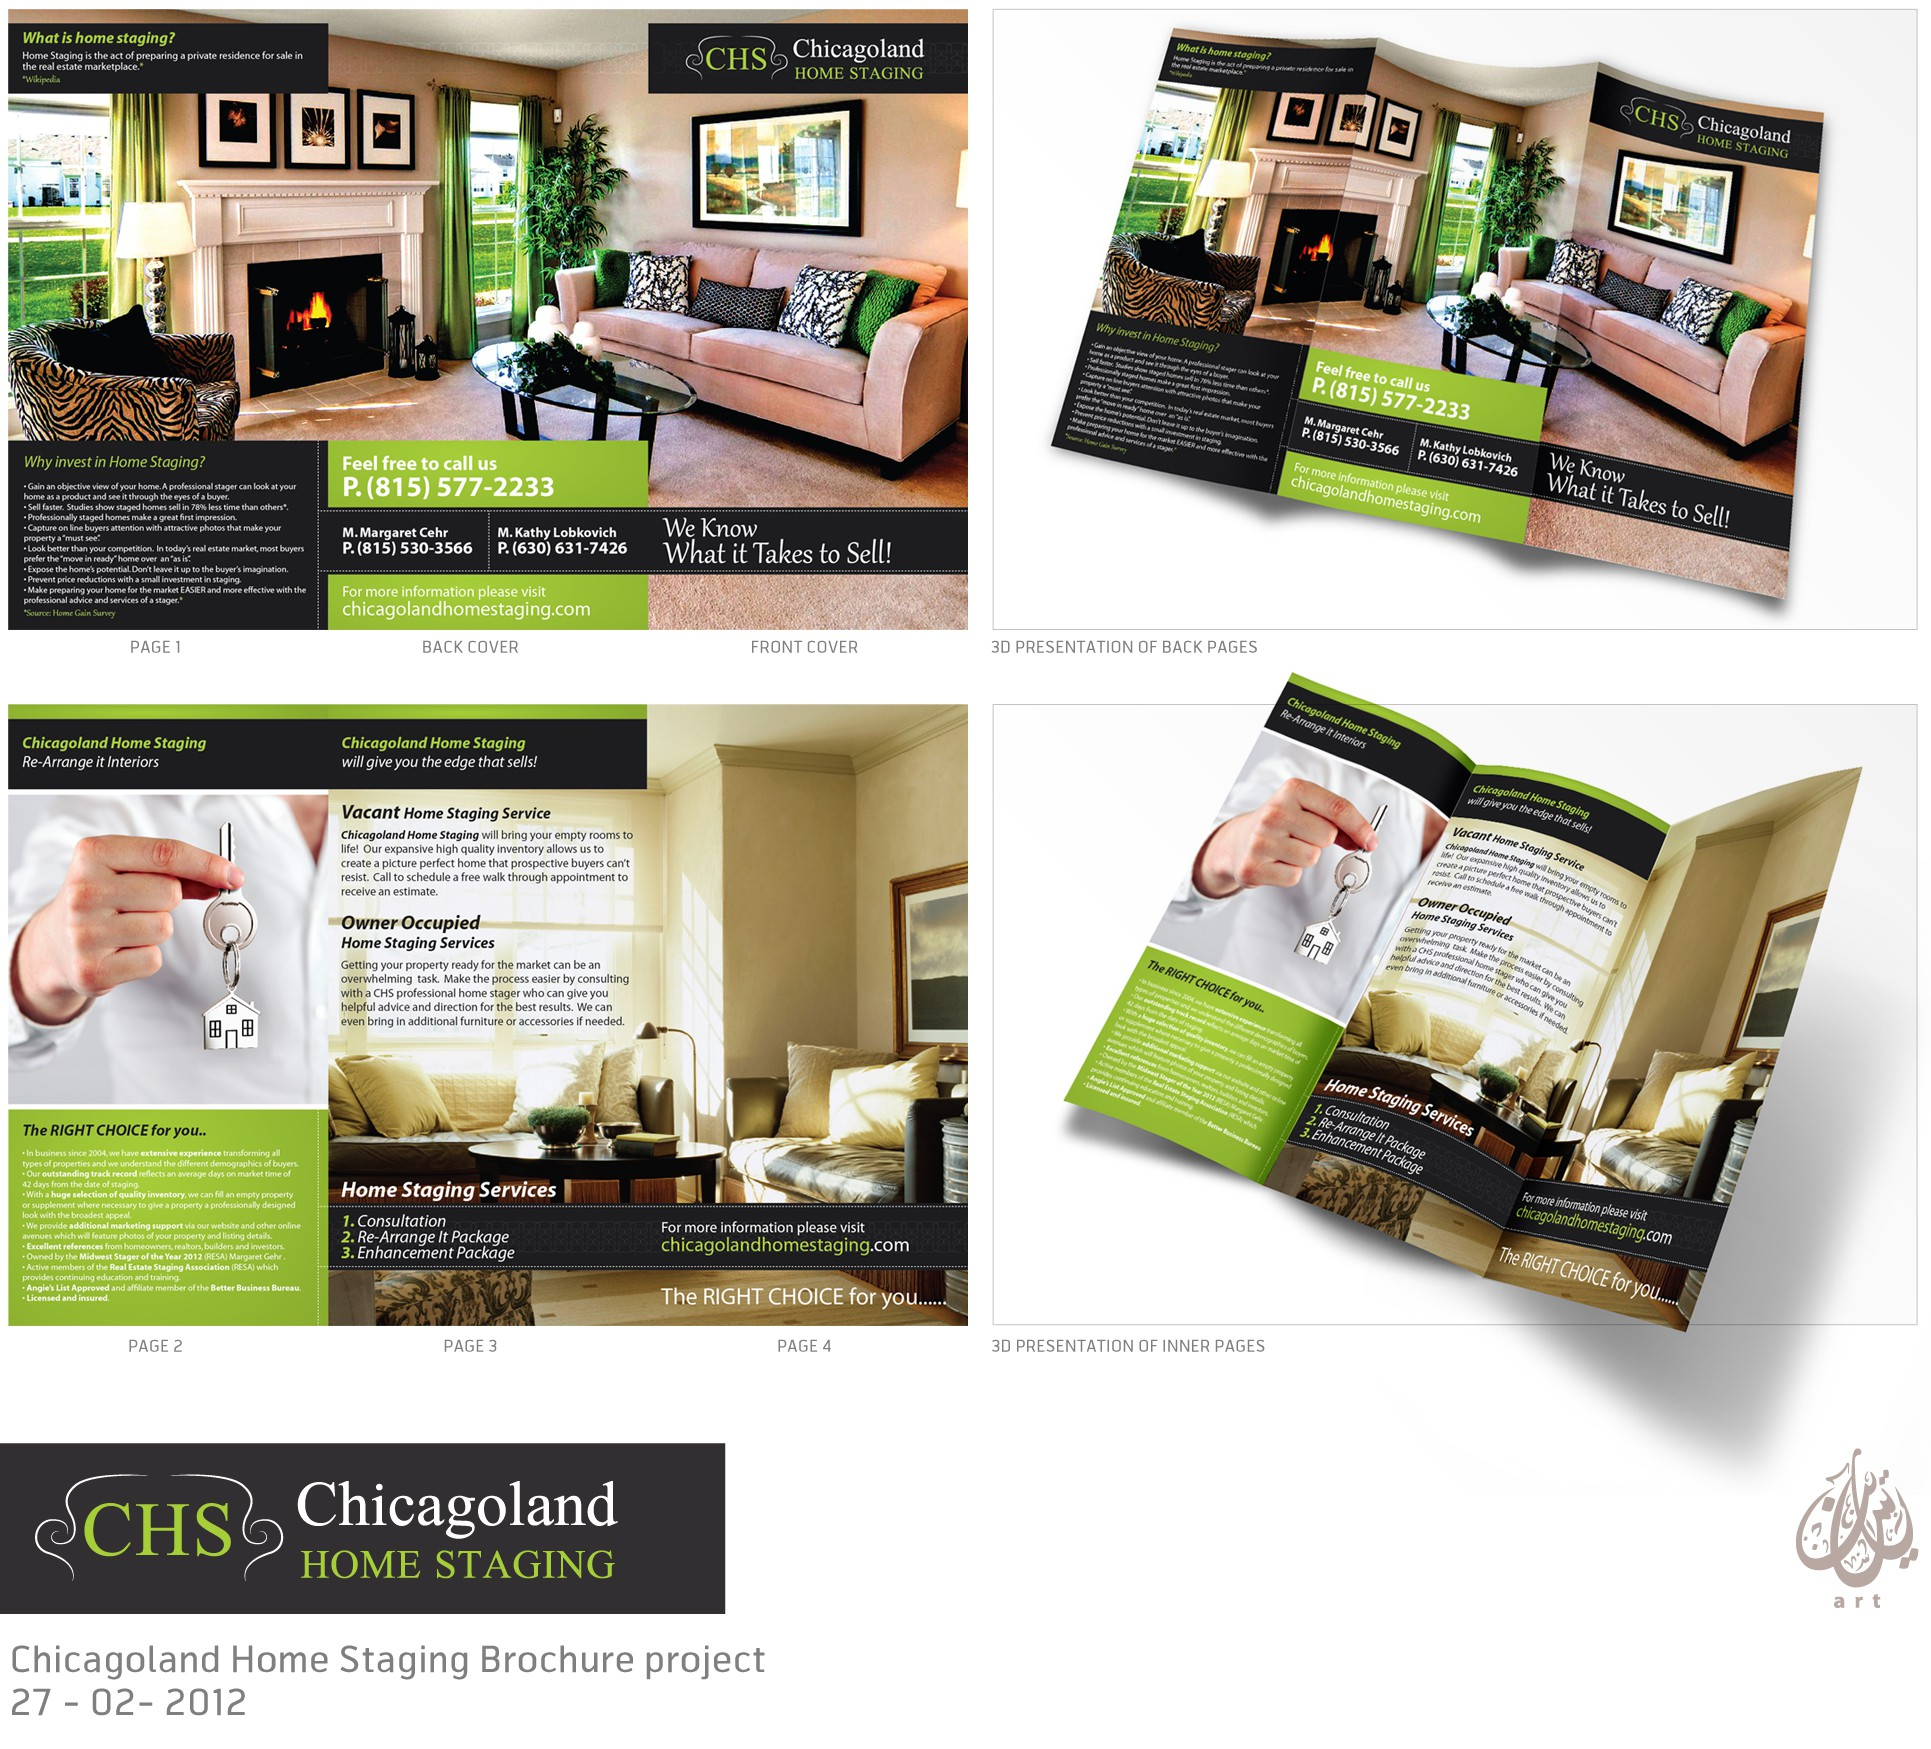 Brochure wanted for Chicagoland Home Staging